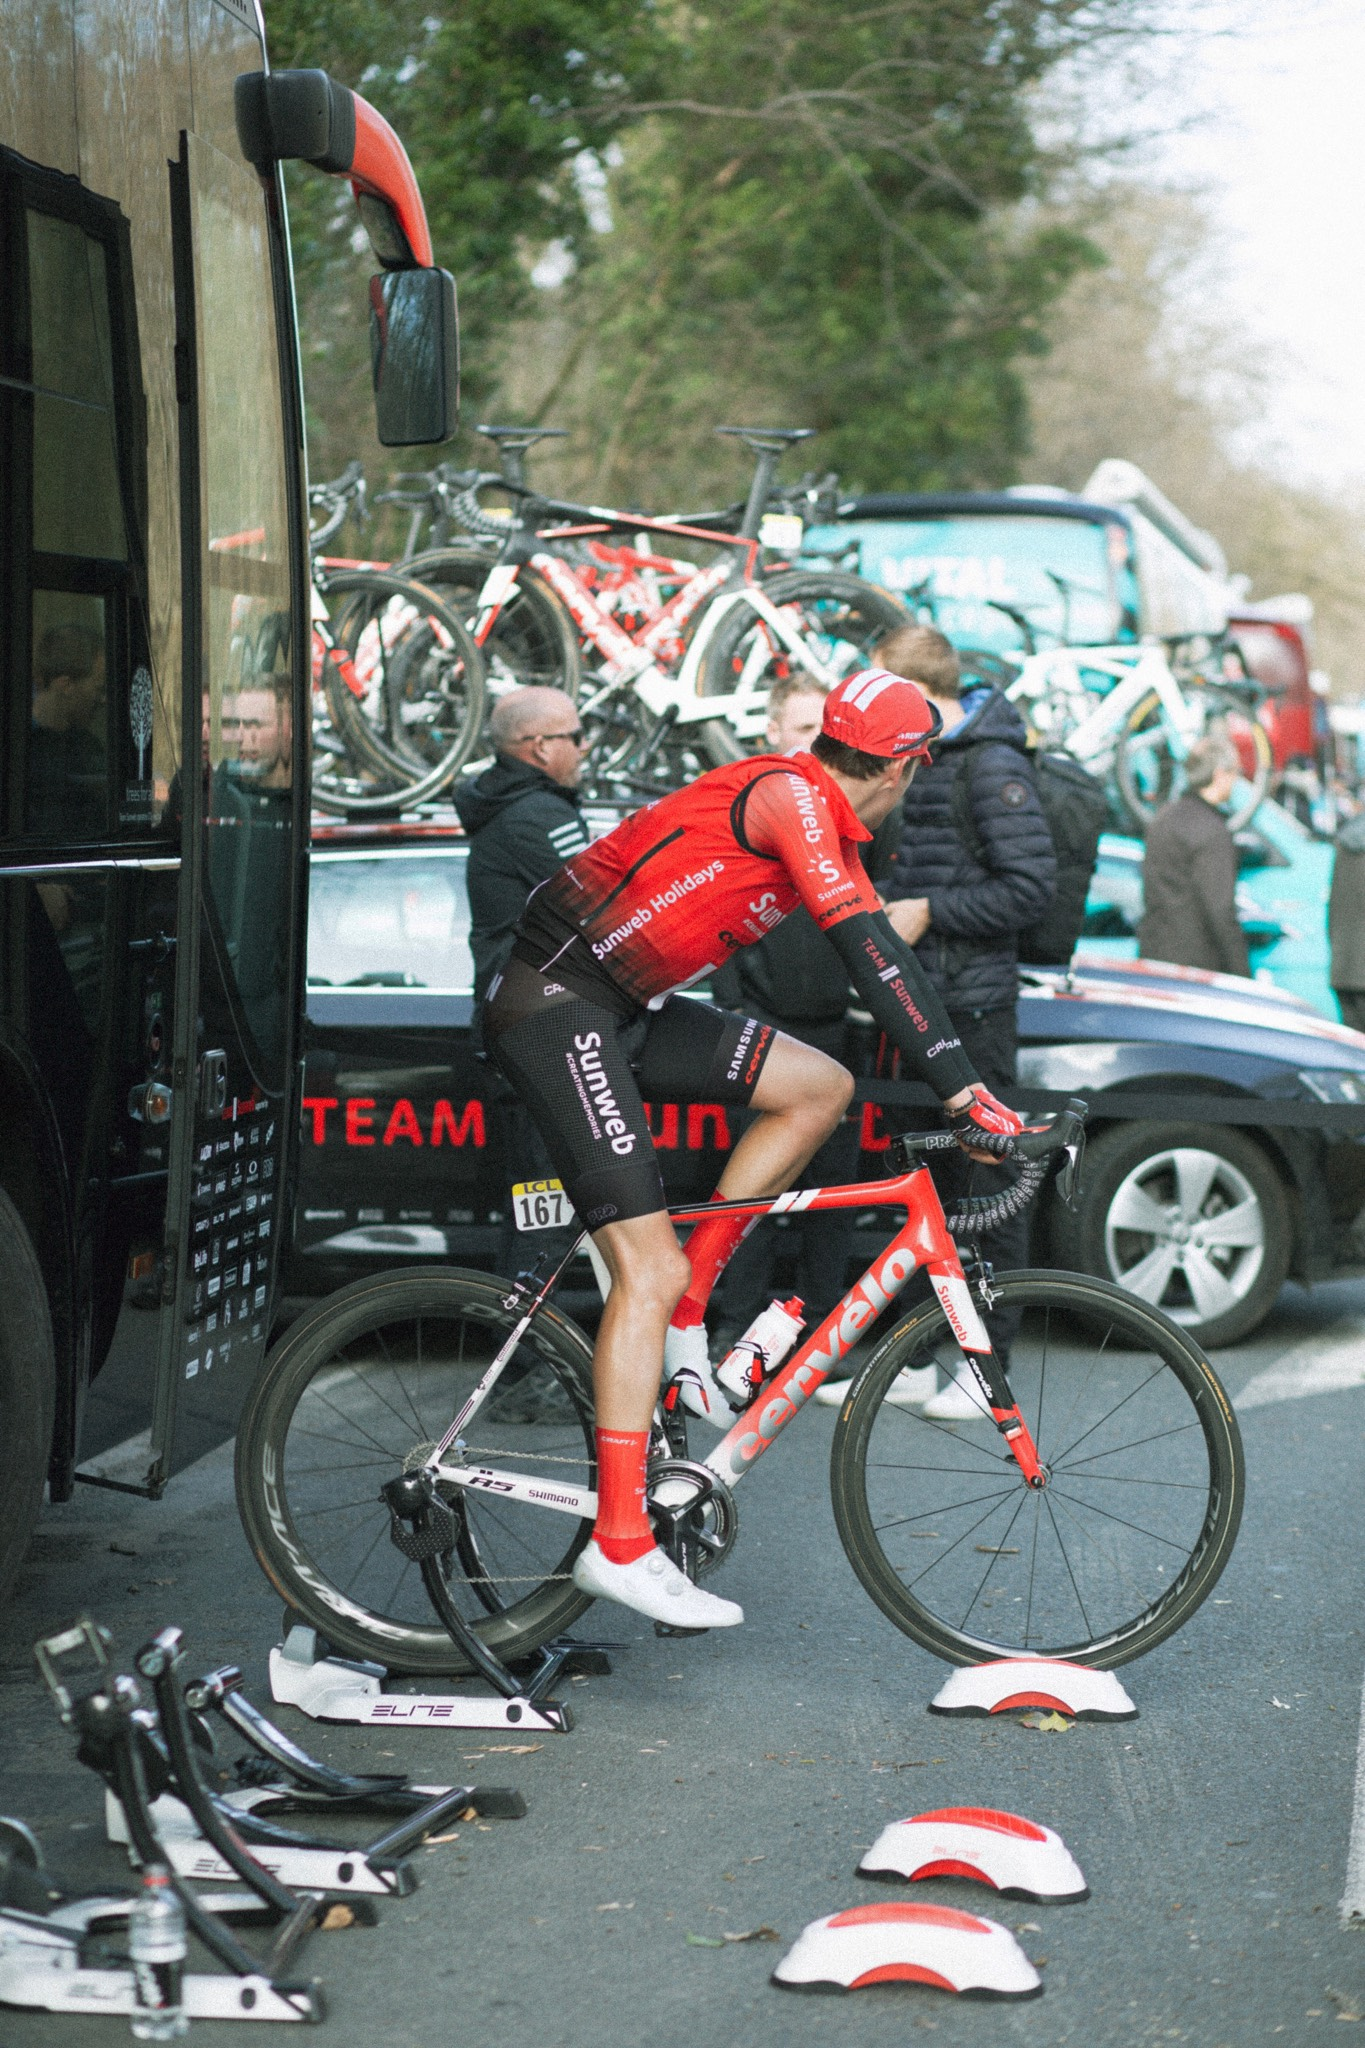 paris nice 2019 saint germain en laye